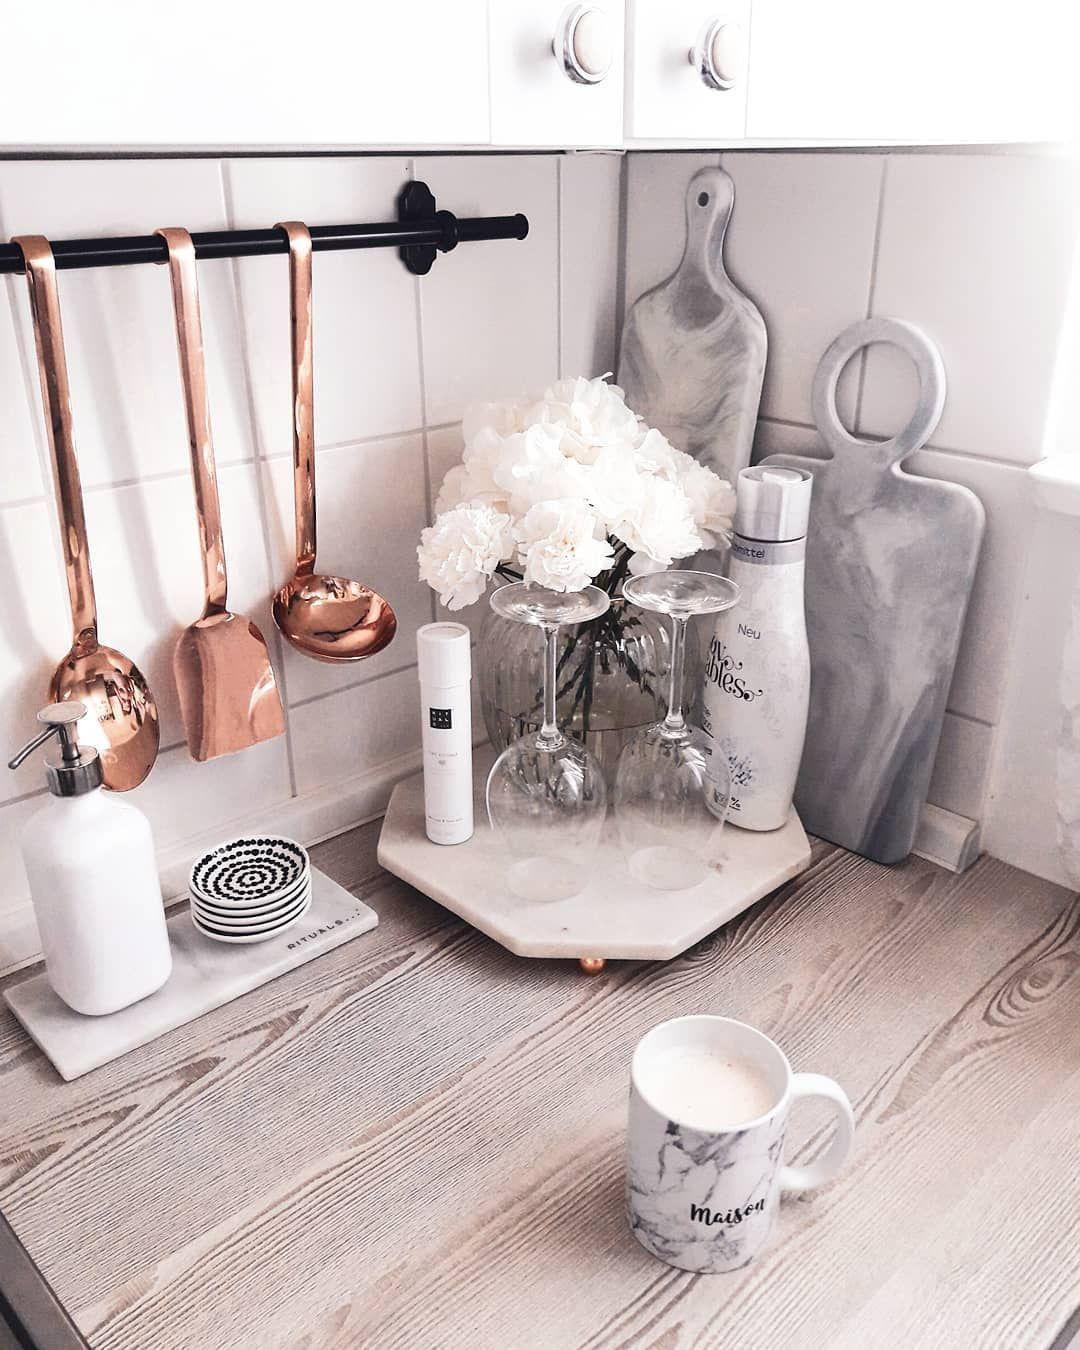 Pin by Julie on Kitchen Decor Themes in 10  Rose gold kitchen